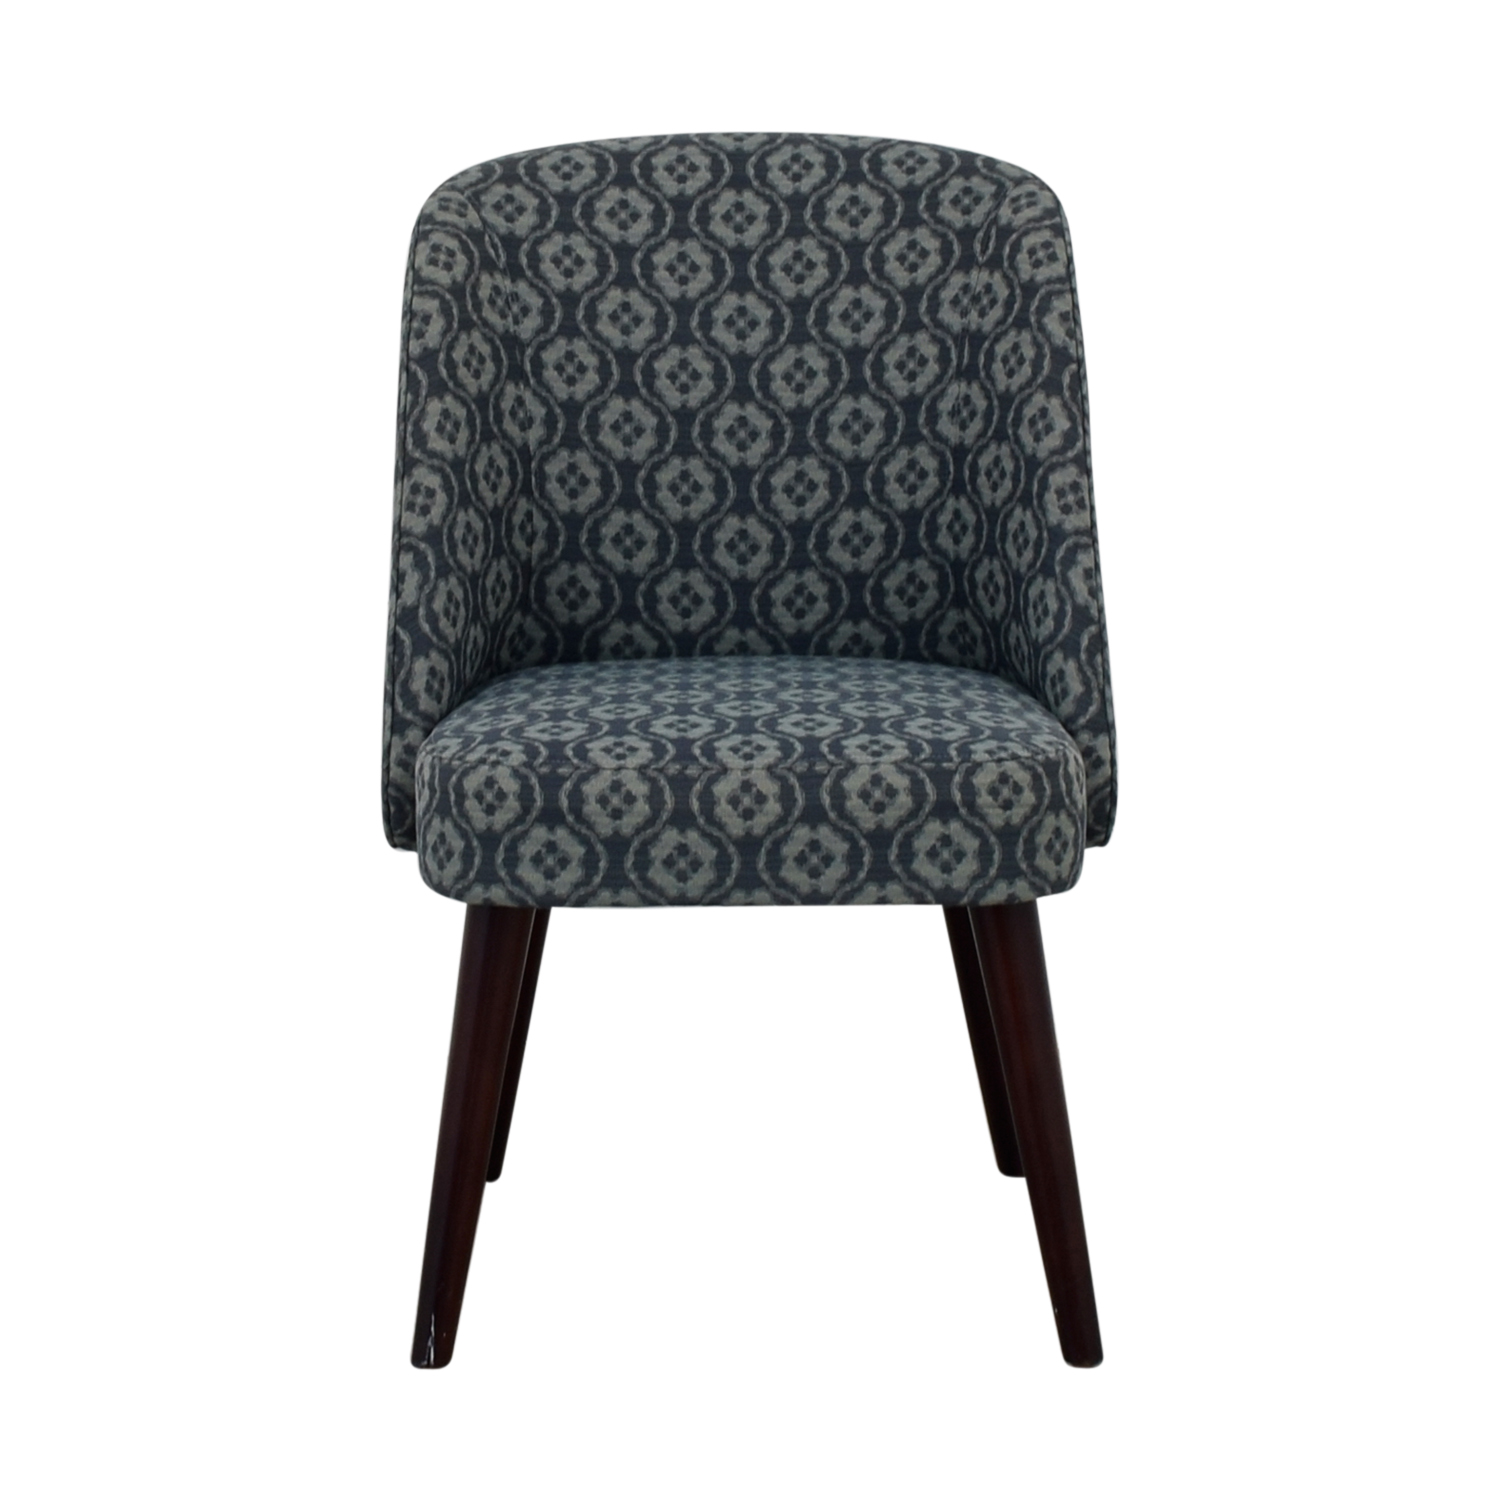 Patterned Blue Accent Chair dimensions